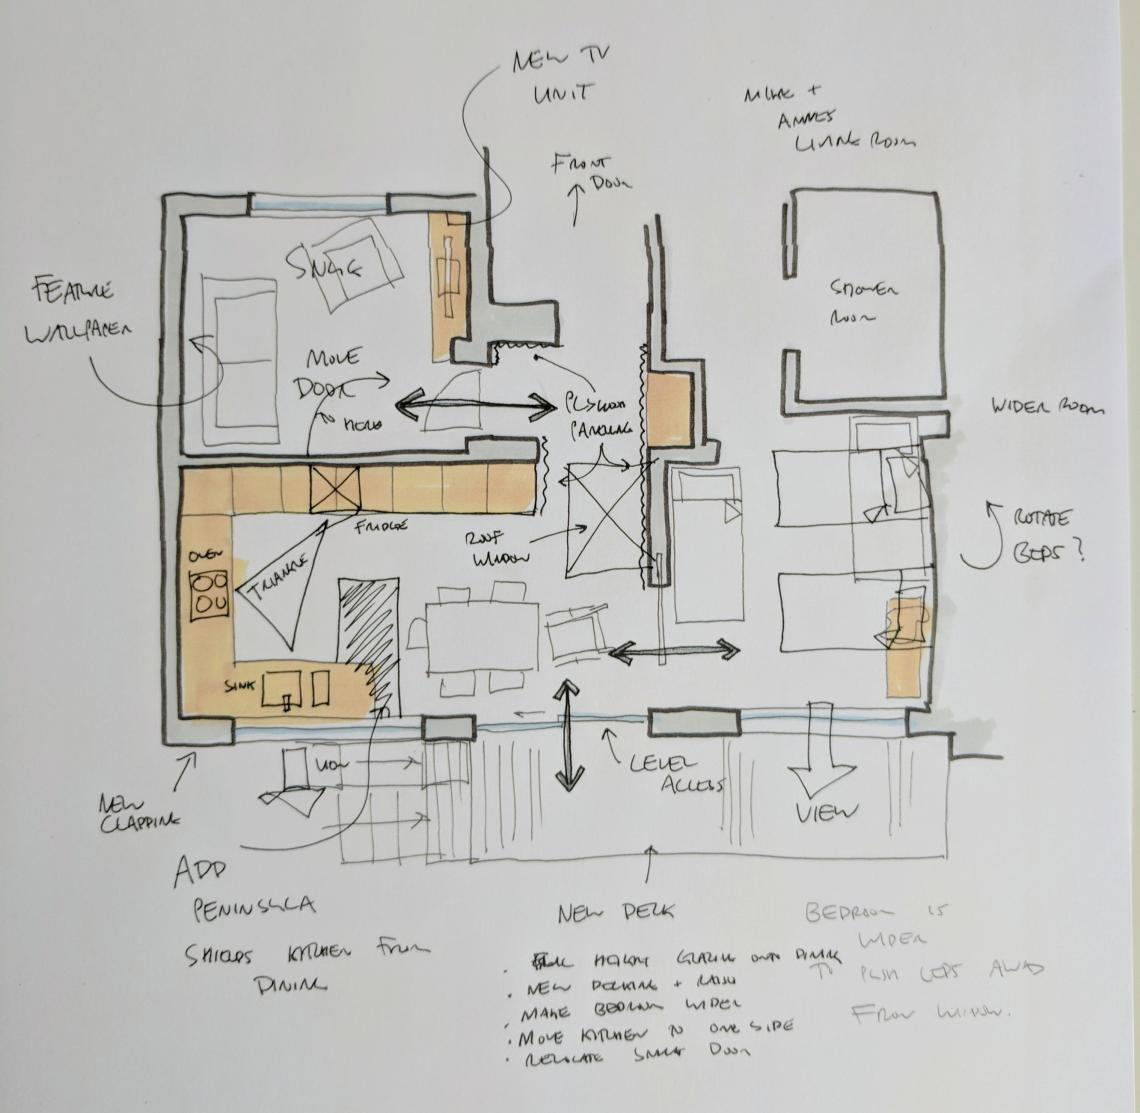 George-and-Ewald-Love-Your-Home-and-Garden-Plan-Sketch